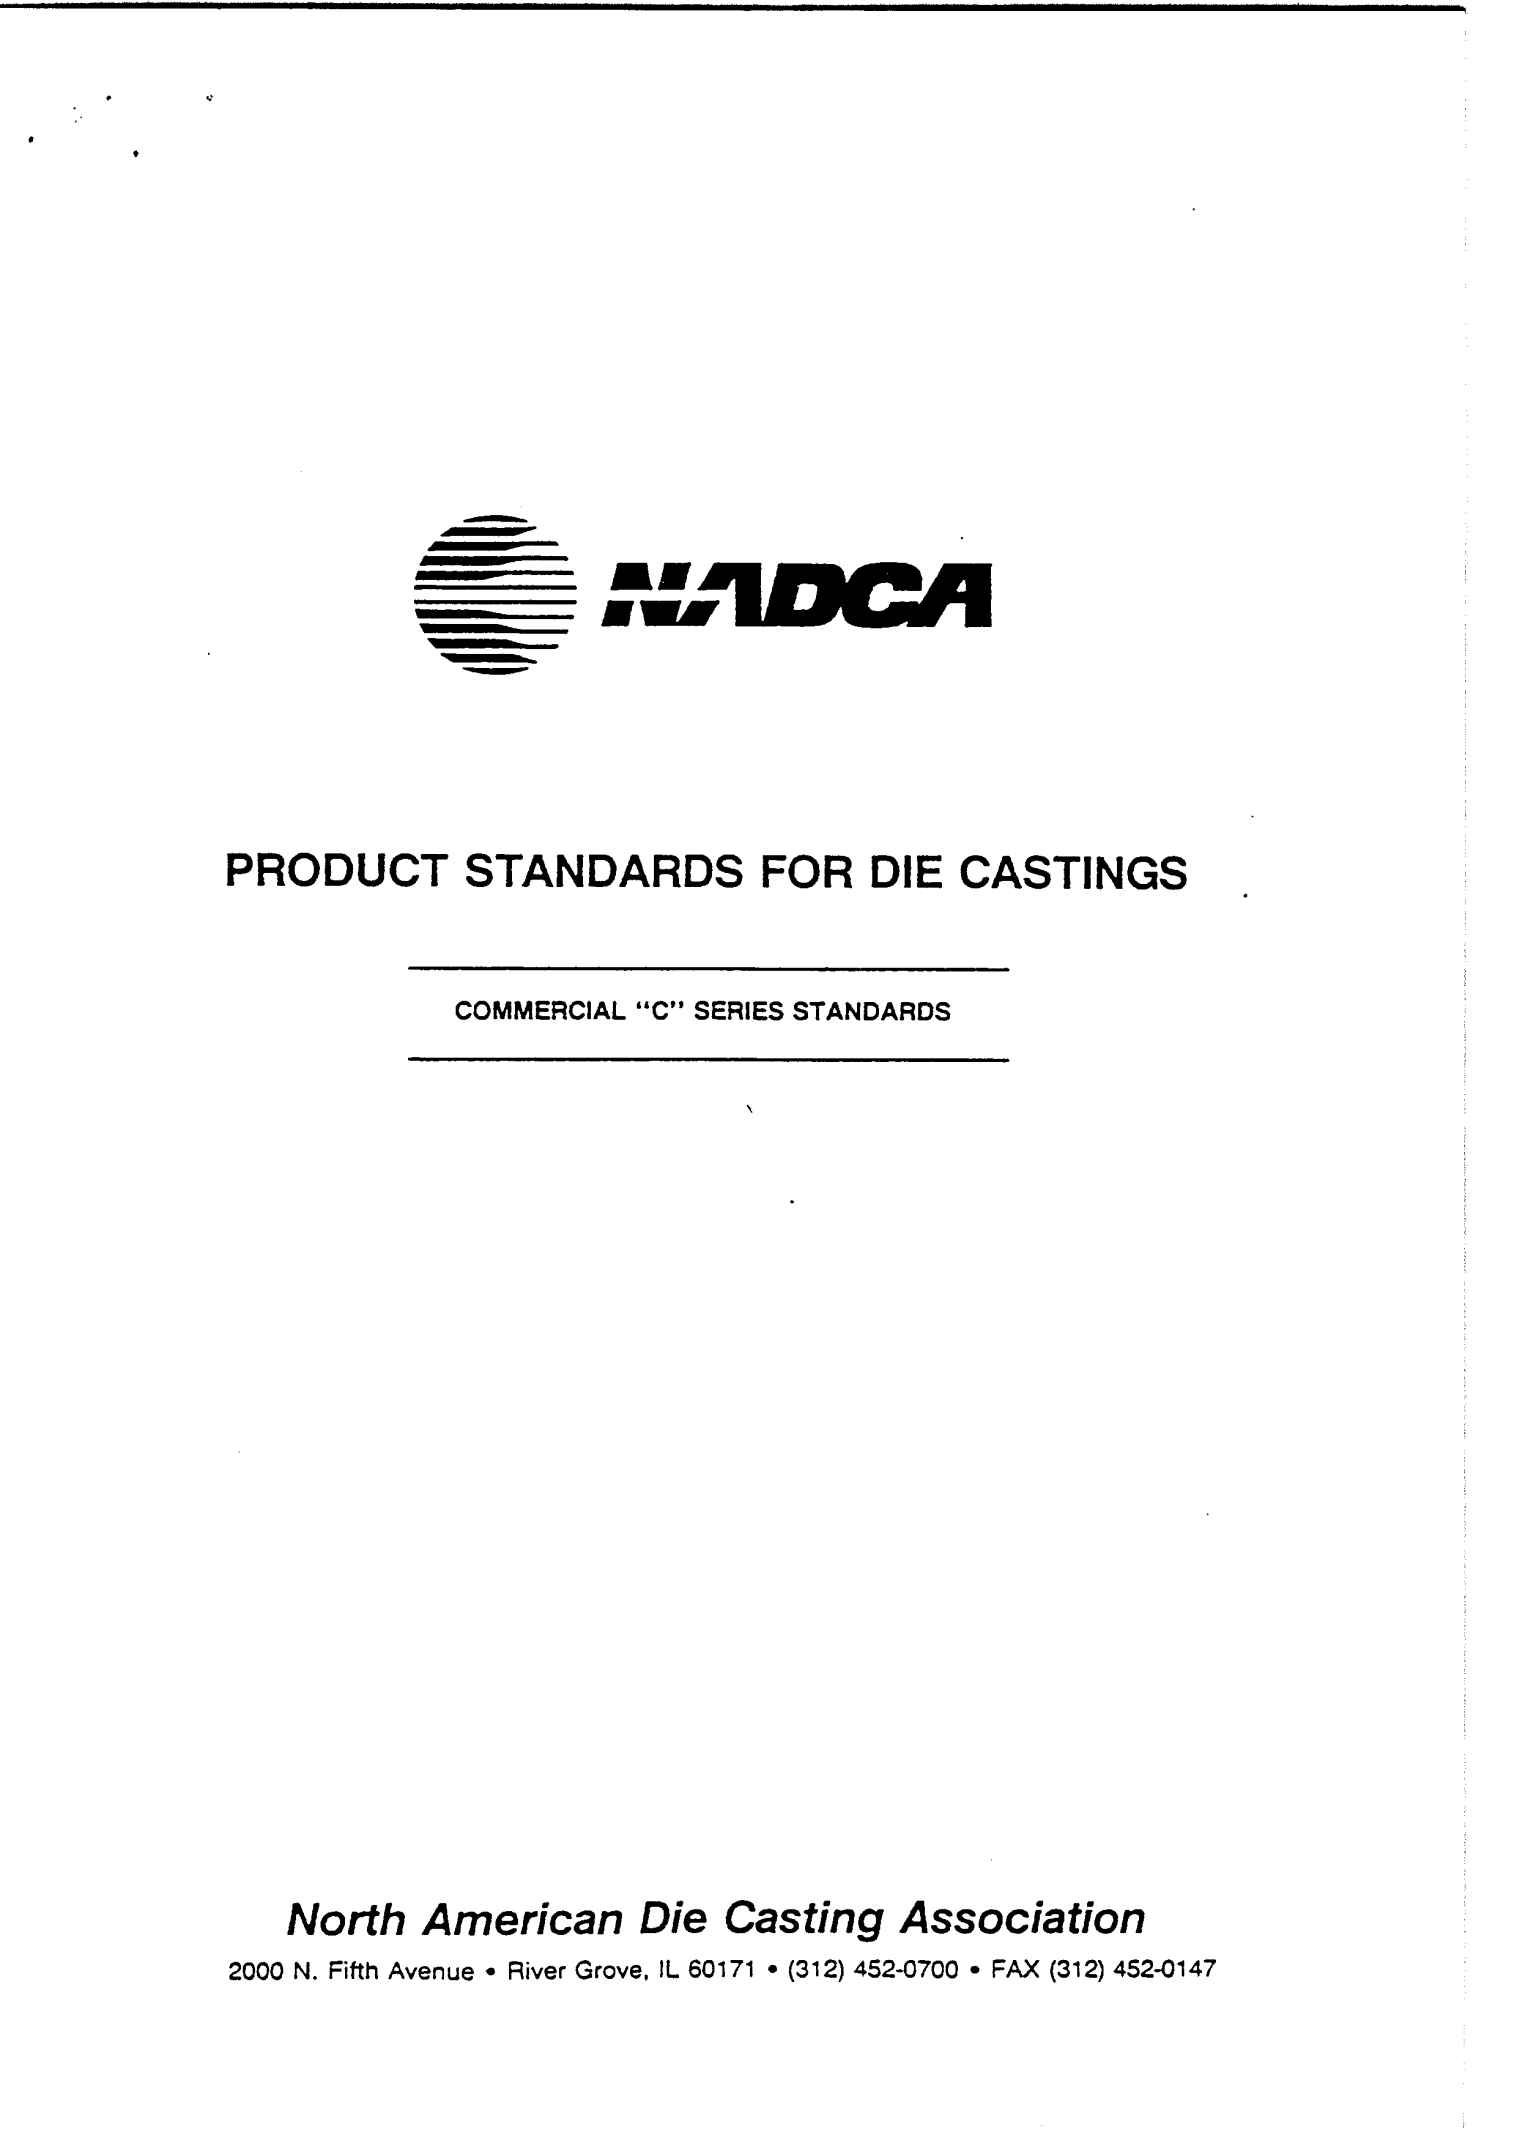 NADCA - PRODUCT STANDARDS FOR DIE CASTING